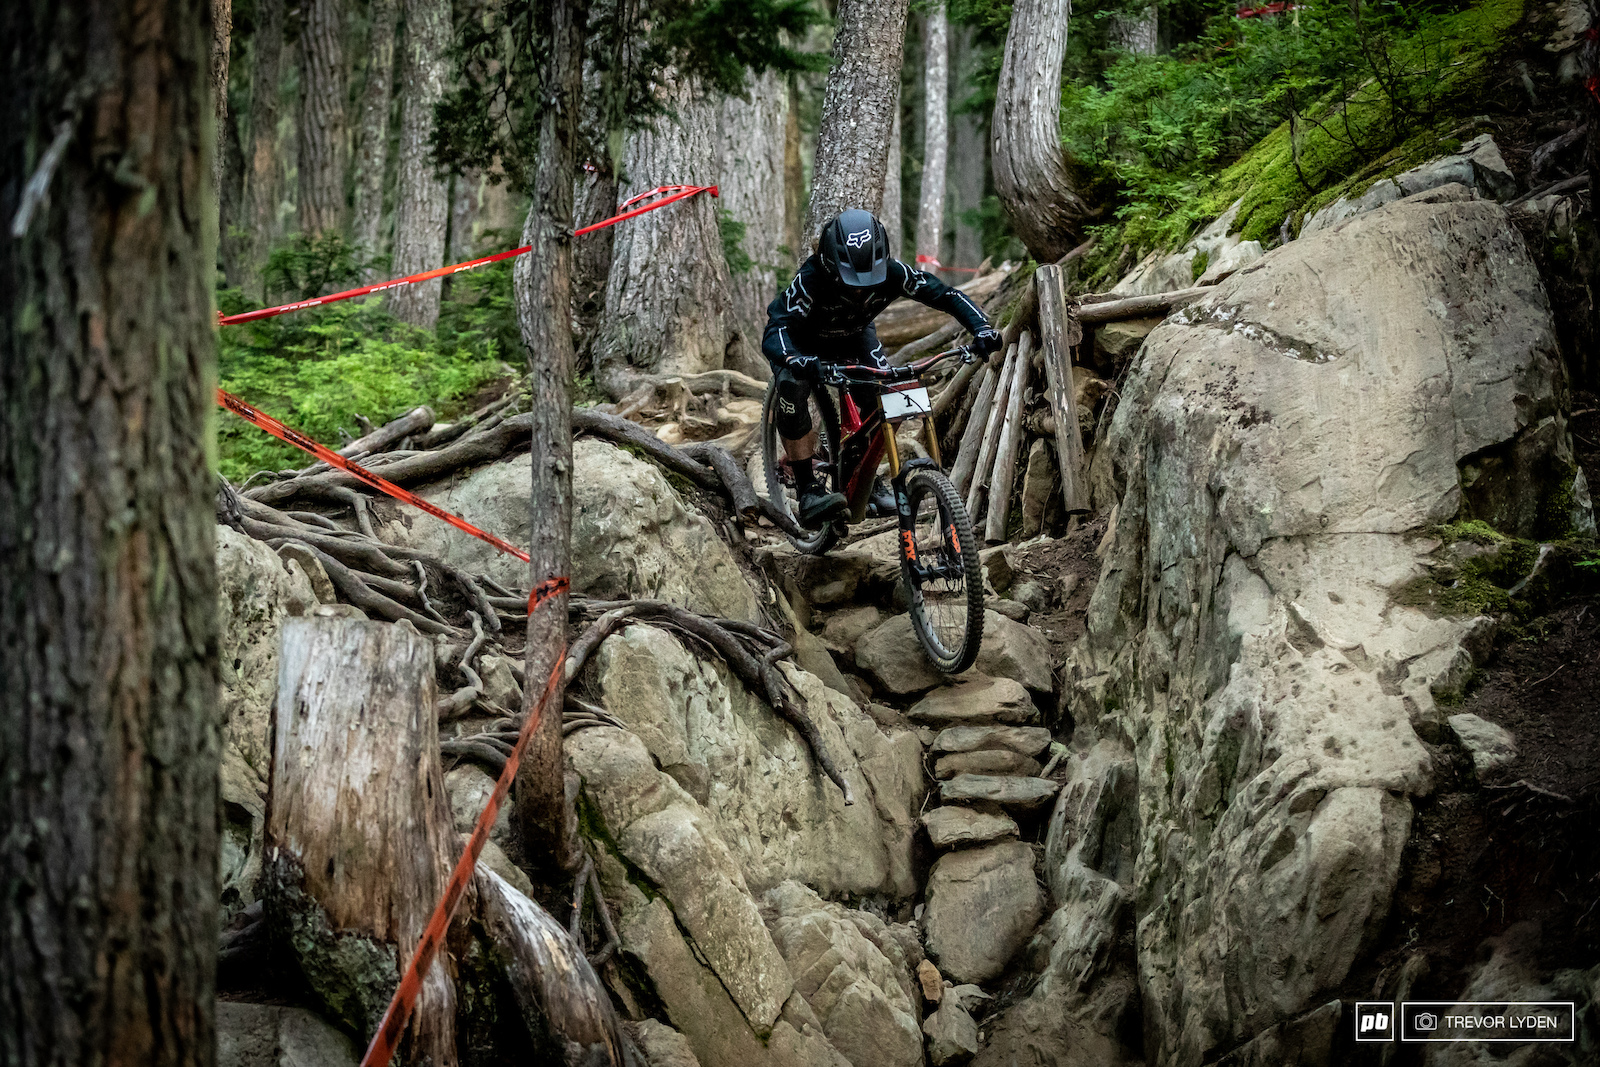 Local legened Chris Kovarik knows this trail well and just missed the podium by one spot.